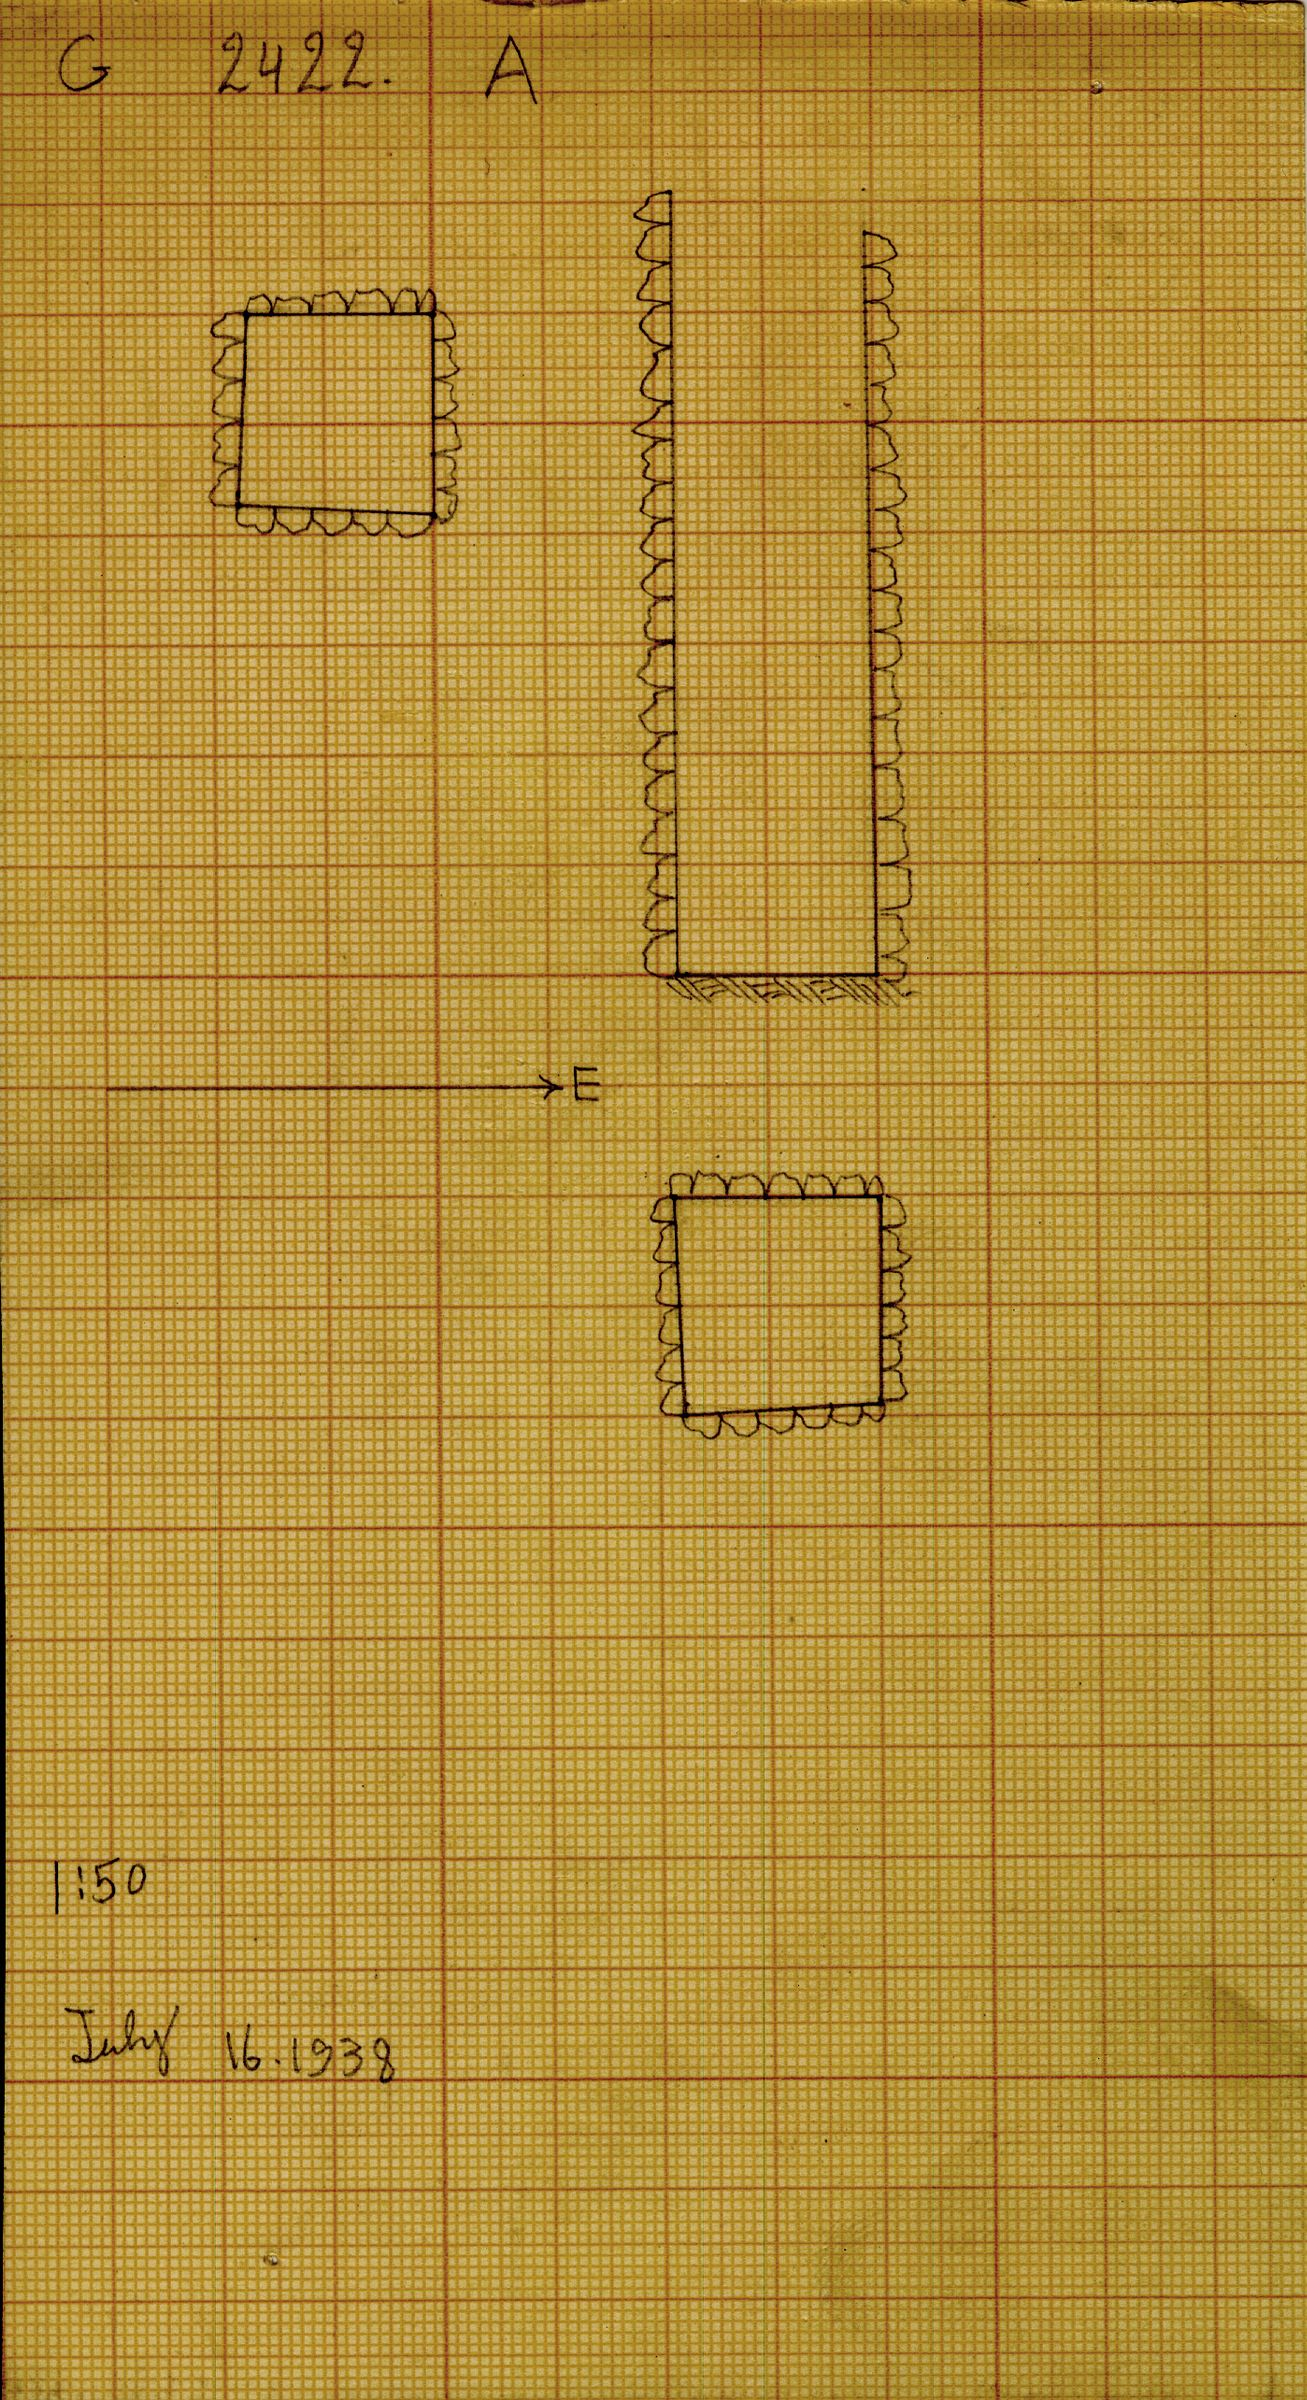 Maps and plans: G 2422, Shaft A